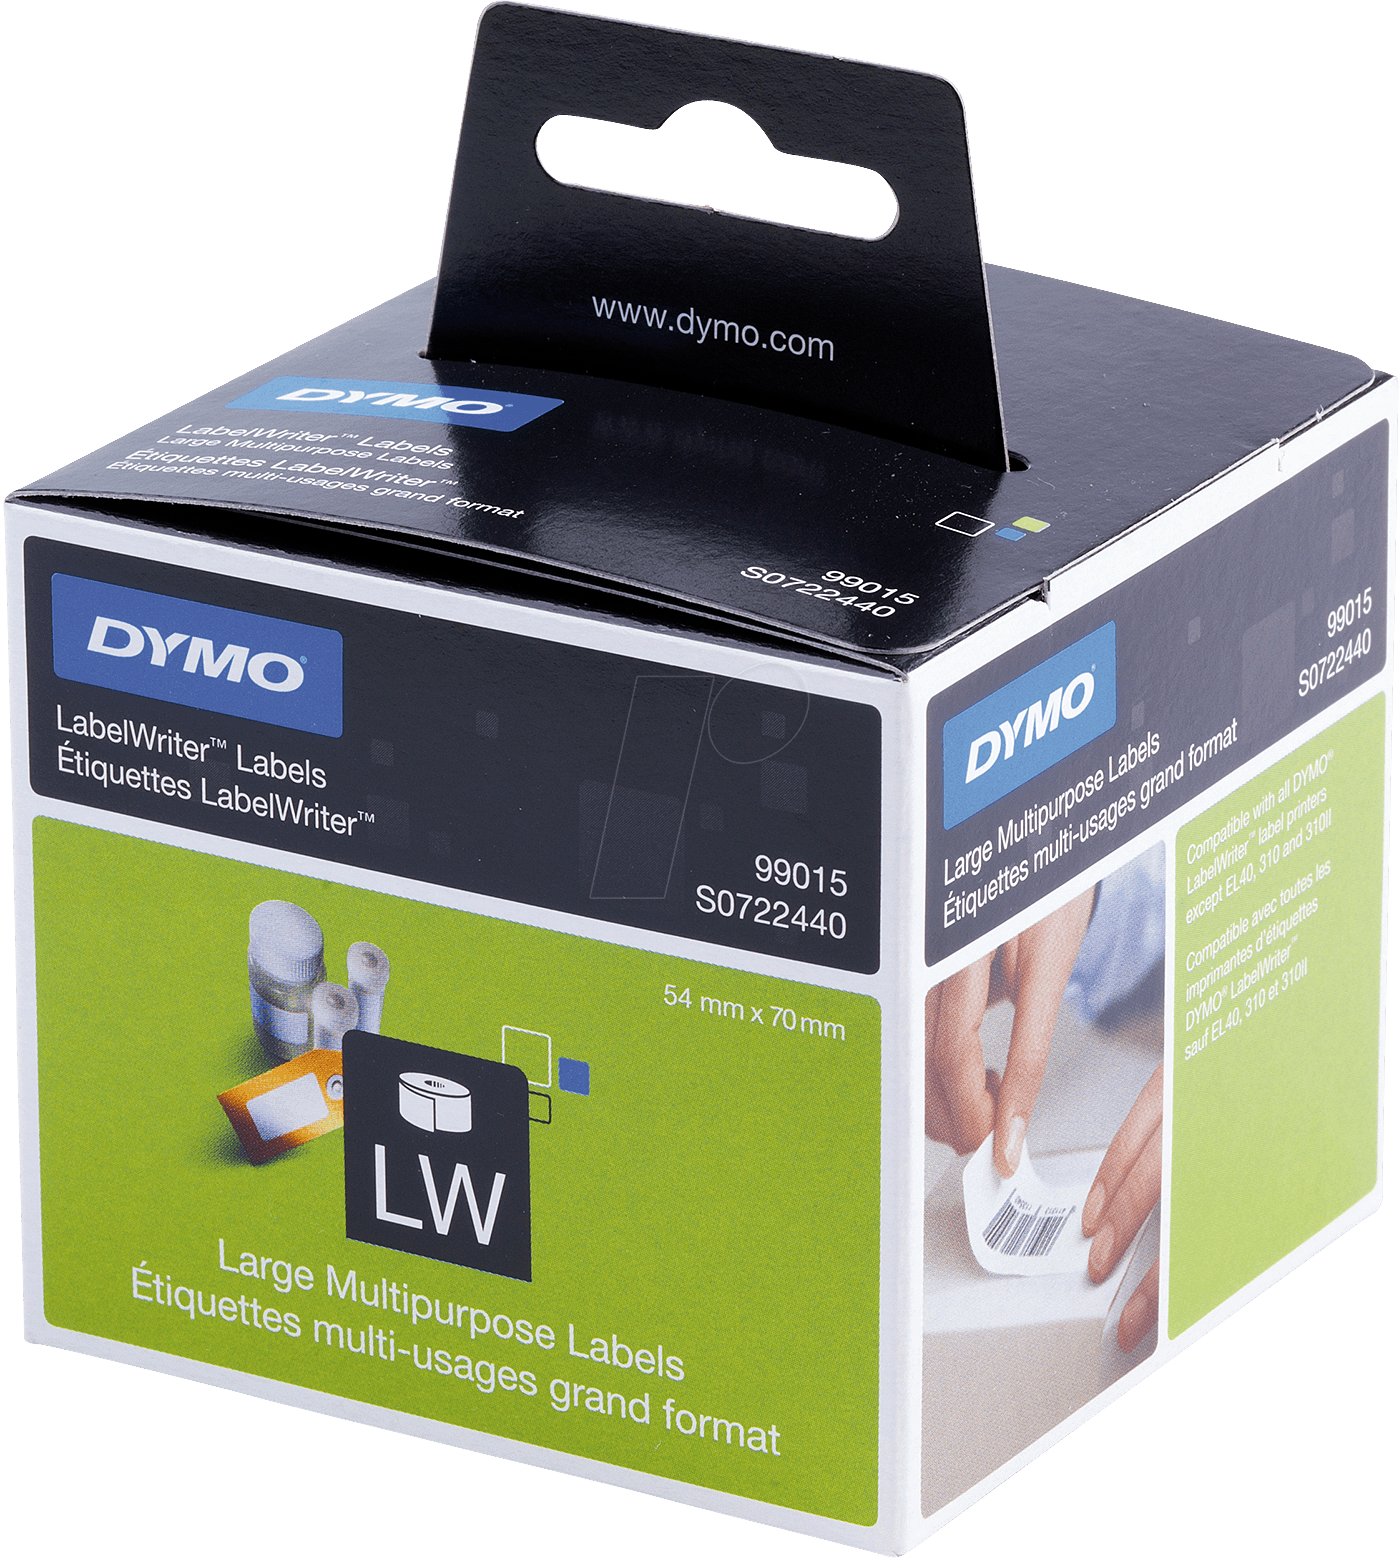 Dymo lw 99015 dymo labels for labelwriter 56 x 70 mm at for Dymo labelwriter 400 labels